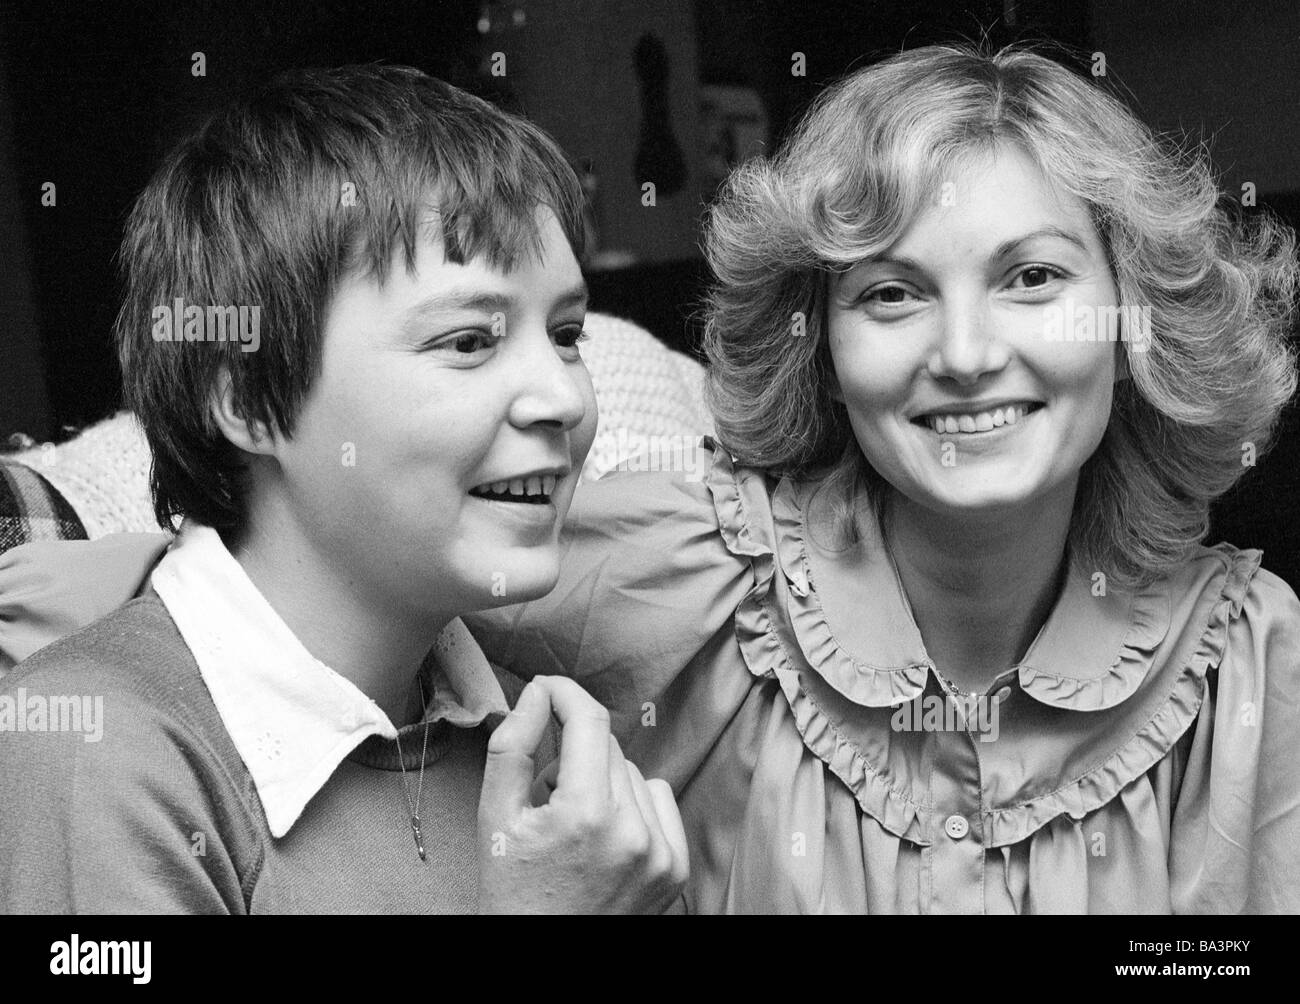 Seventies, black and white photo, people, two young women, laughing, portrait, aged 25 to 30 years, Monika, Jutta - Stock Image